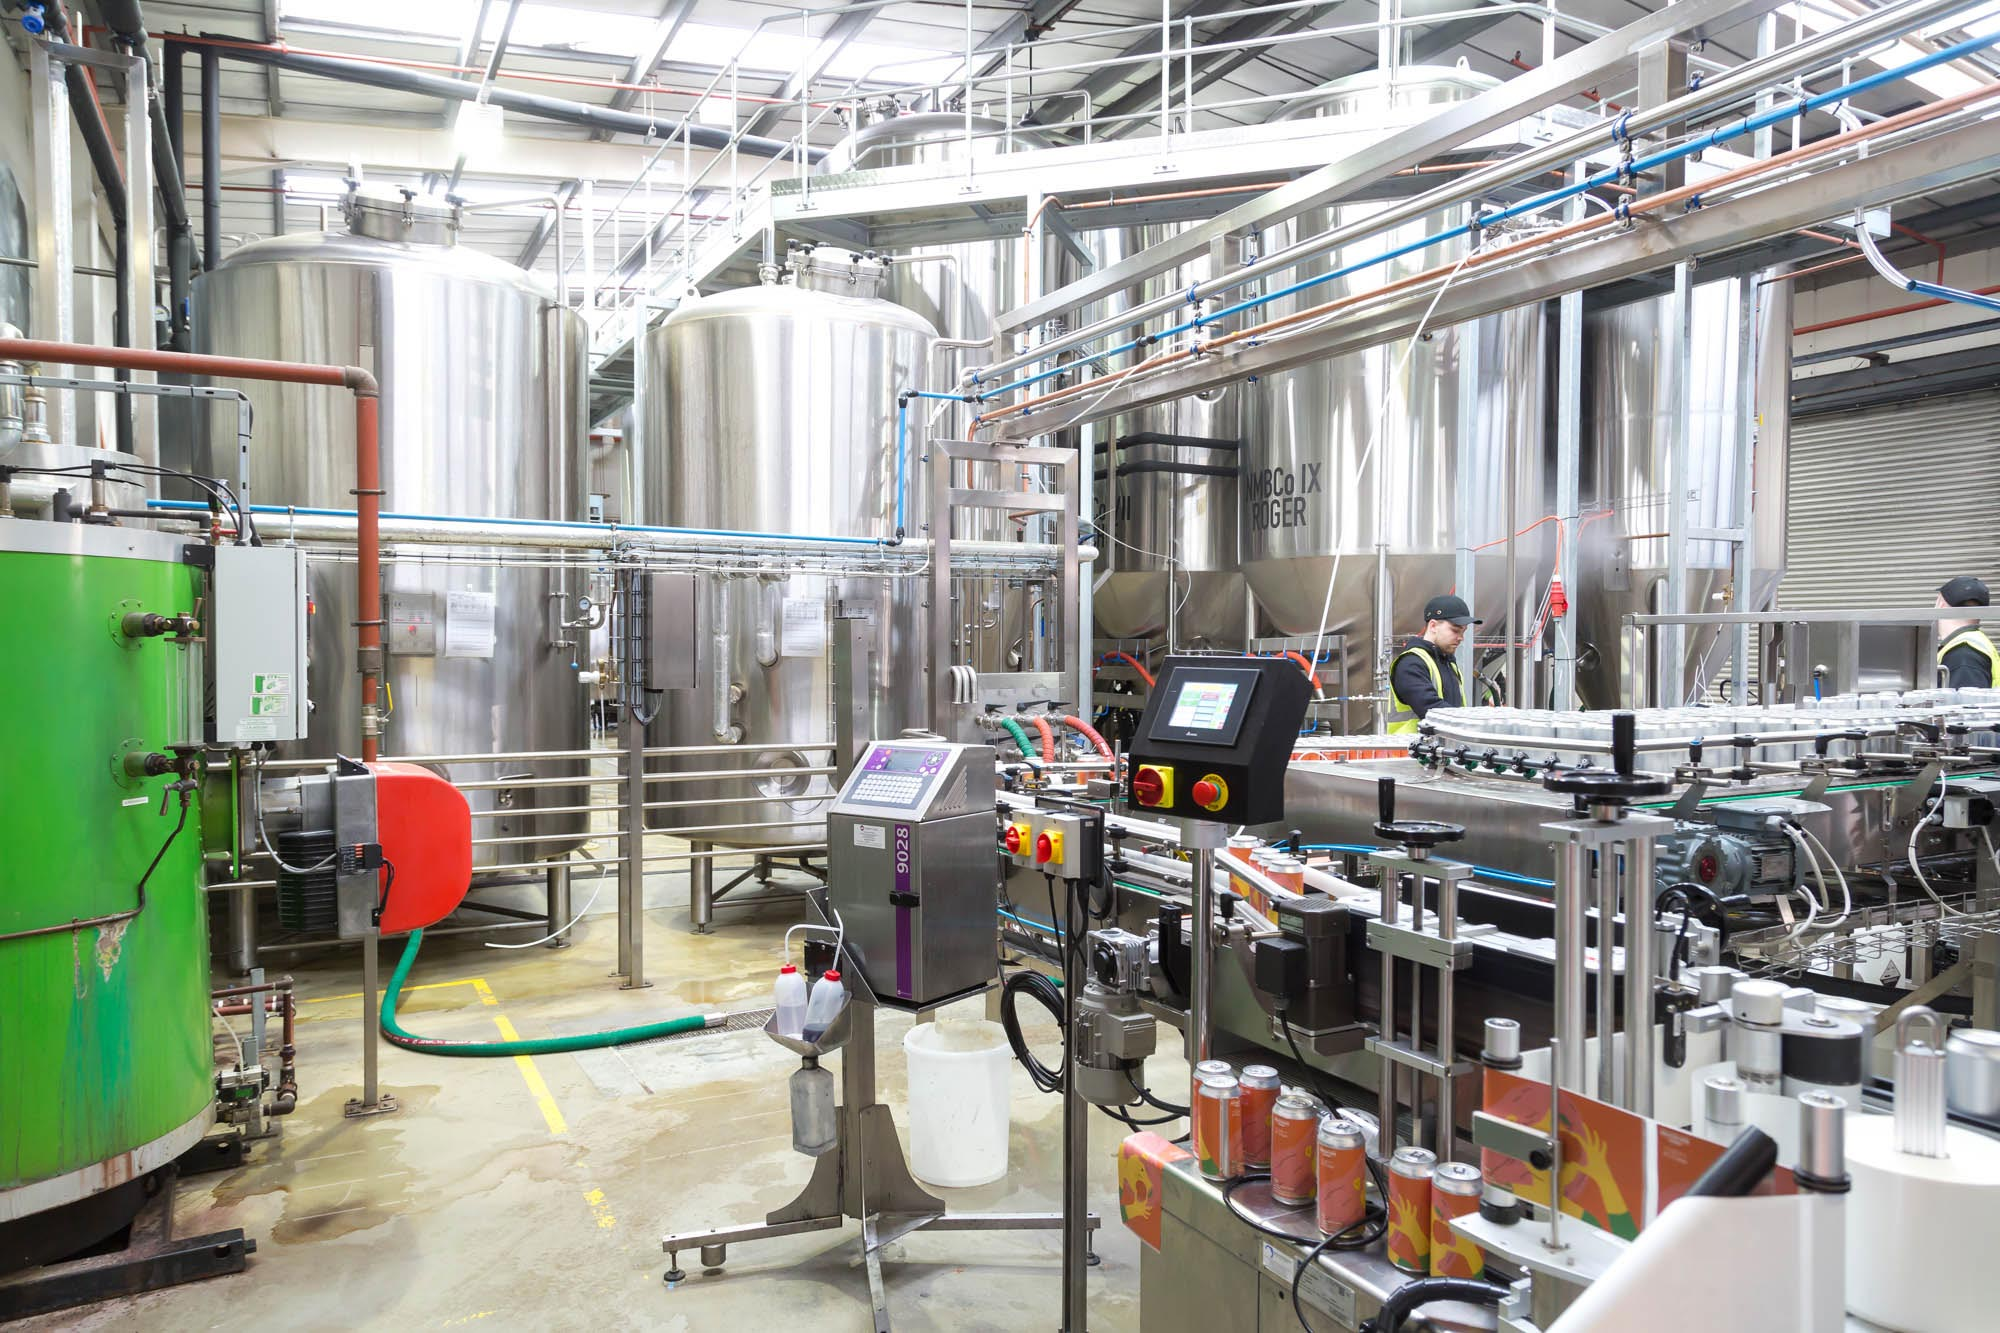 interior image of Northern Monk brewery with various brewery equipment including a canning machine